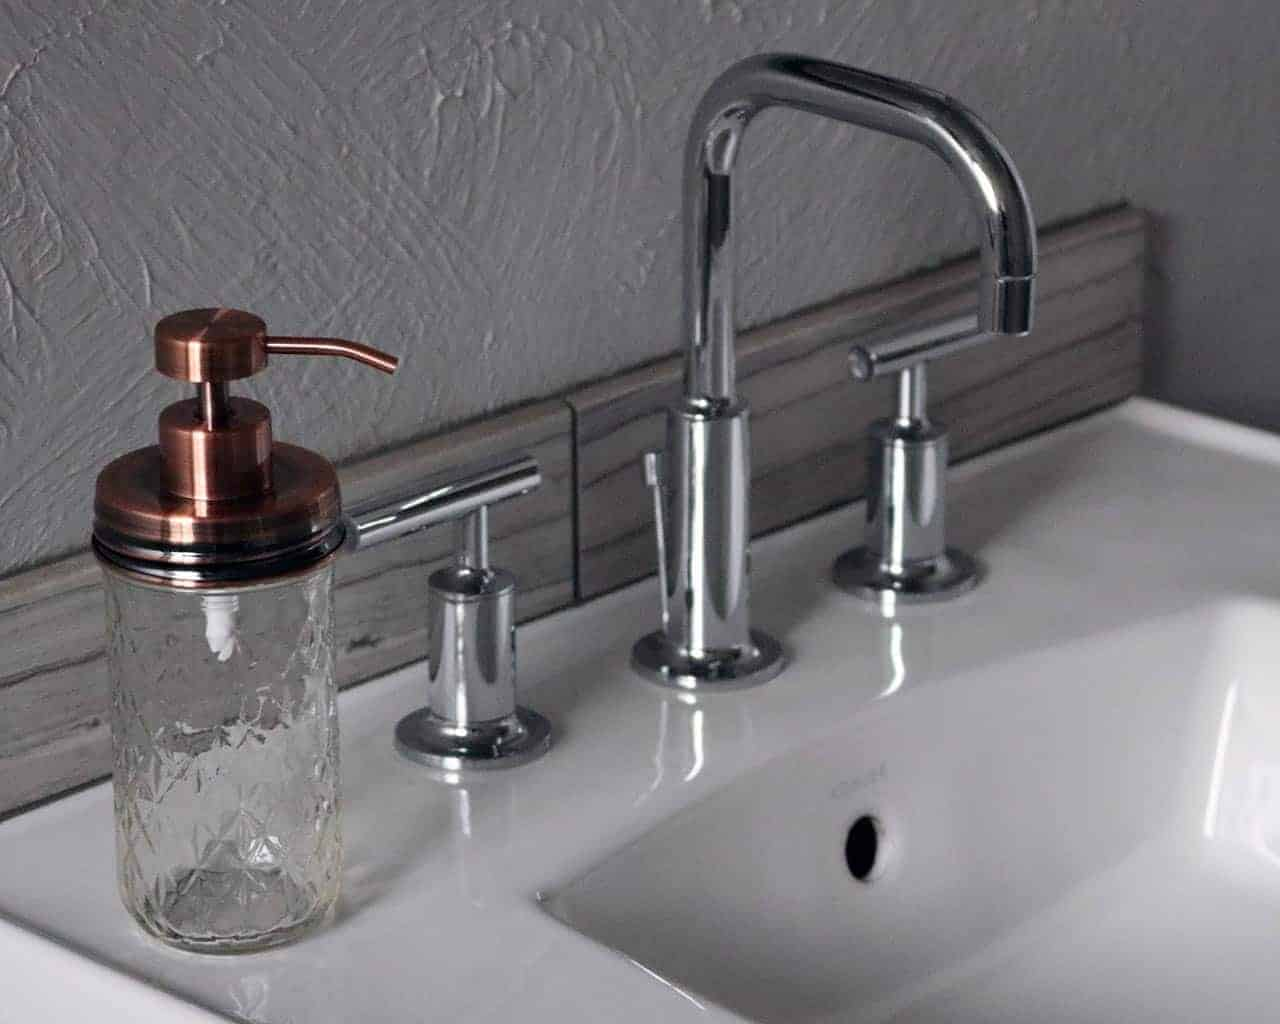 Vintage Bathroom Soap Dispenser Vintage Copper Soap Pump Lid Kit For Regular Mouth Mason Jars